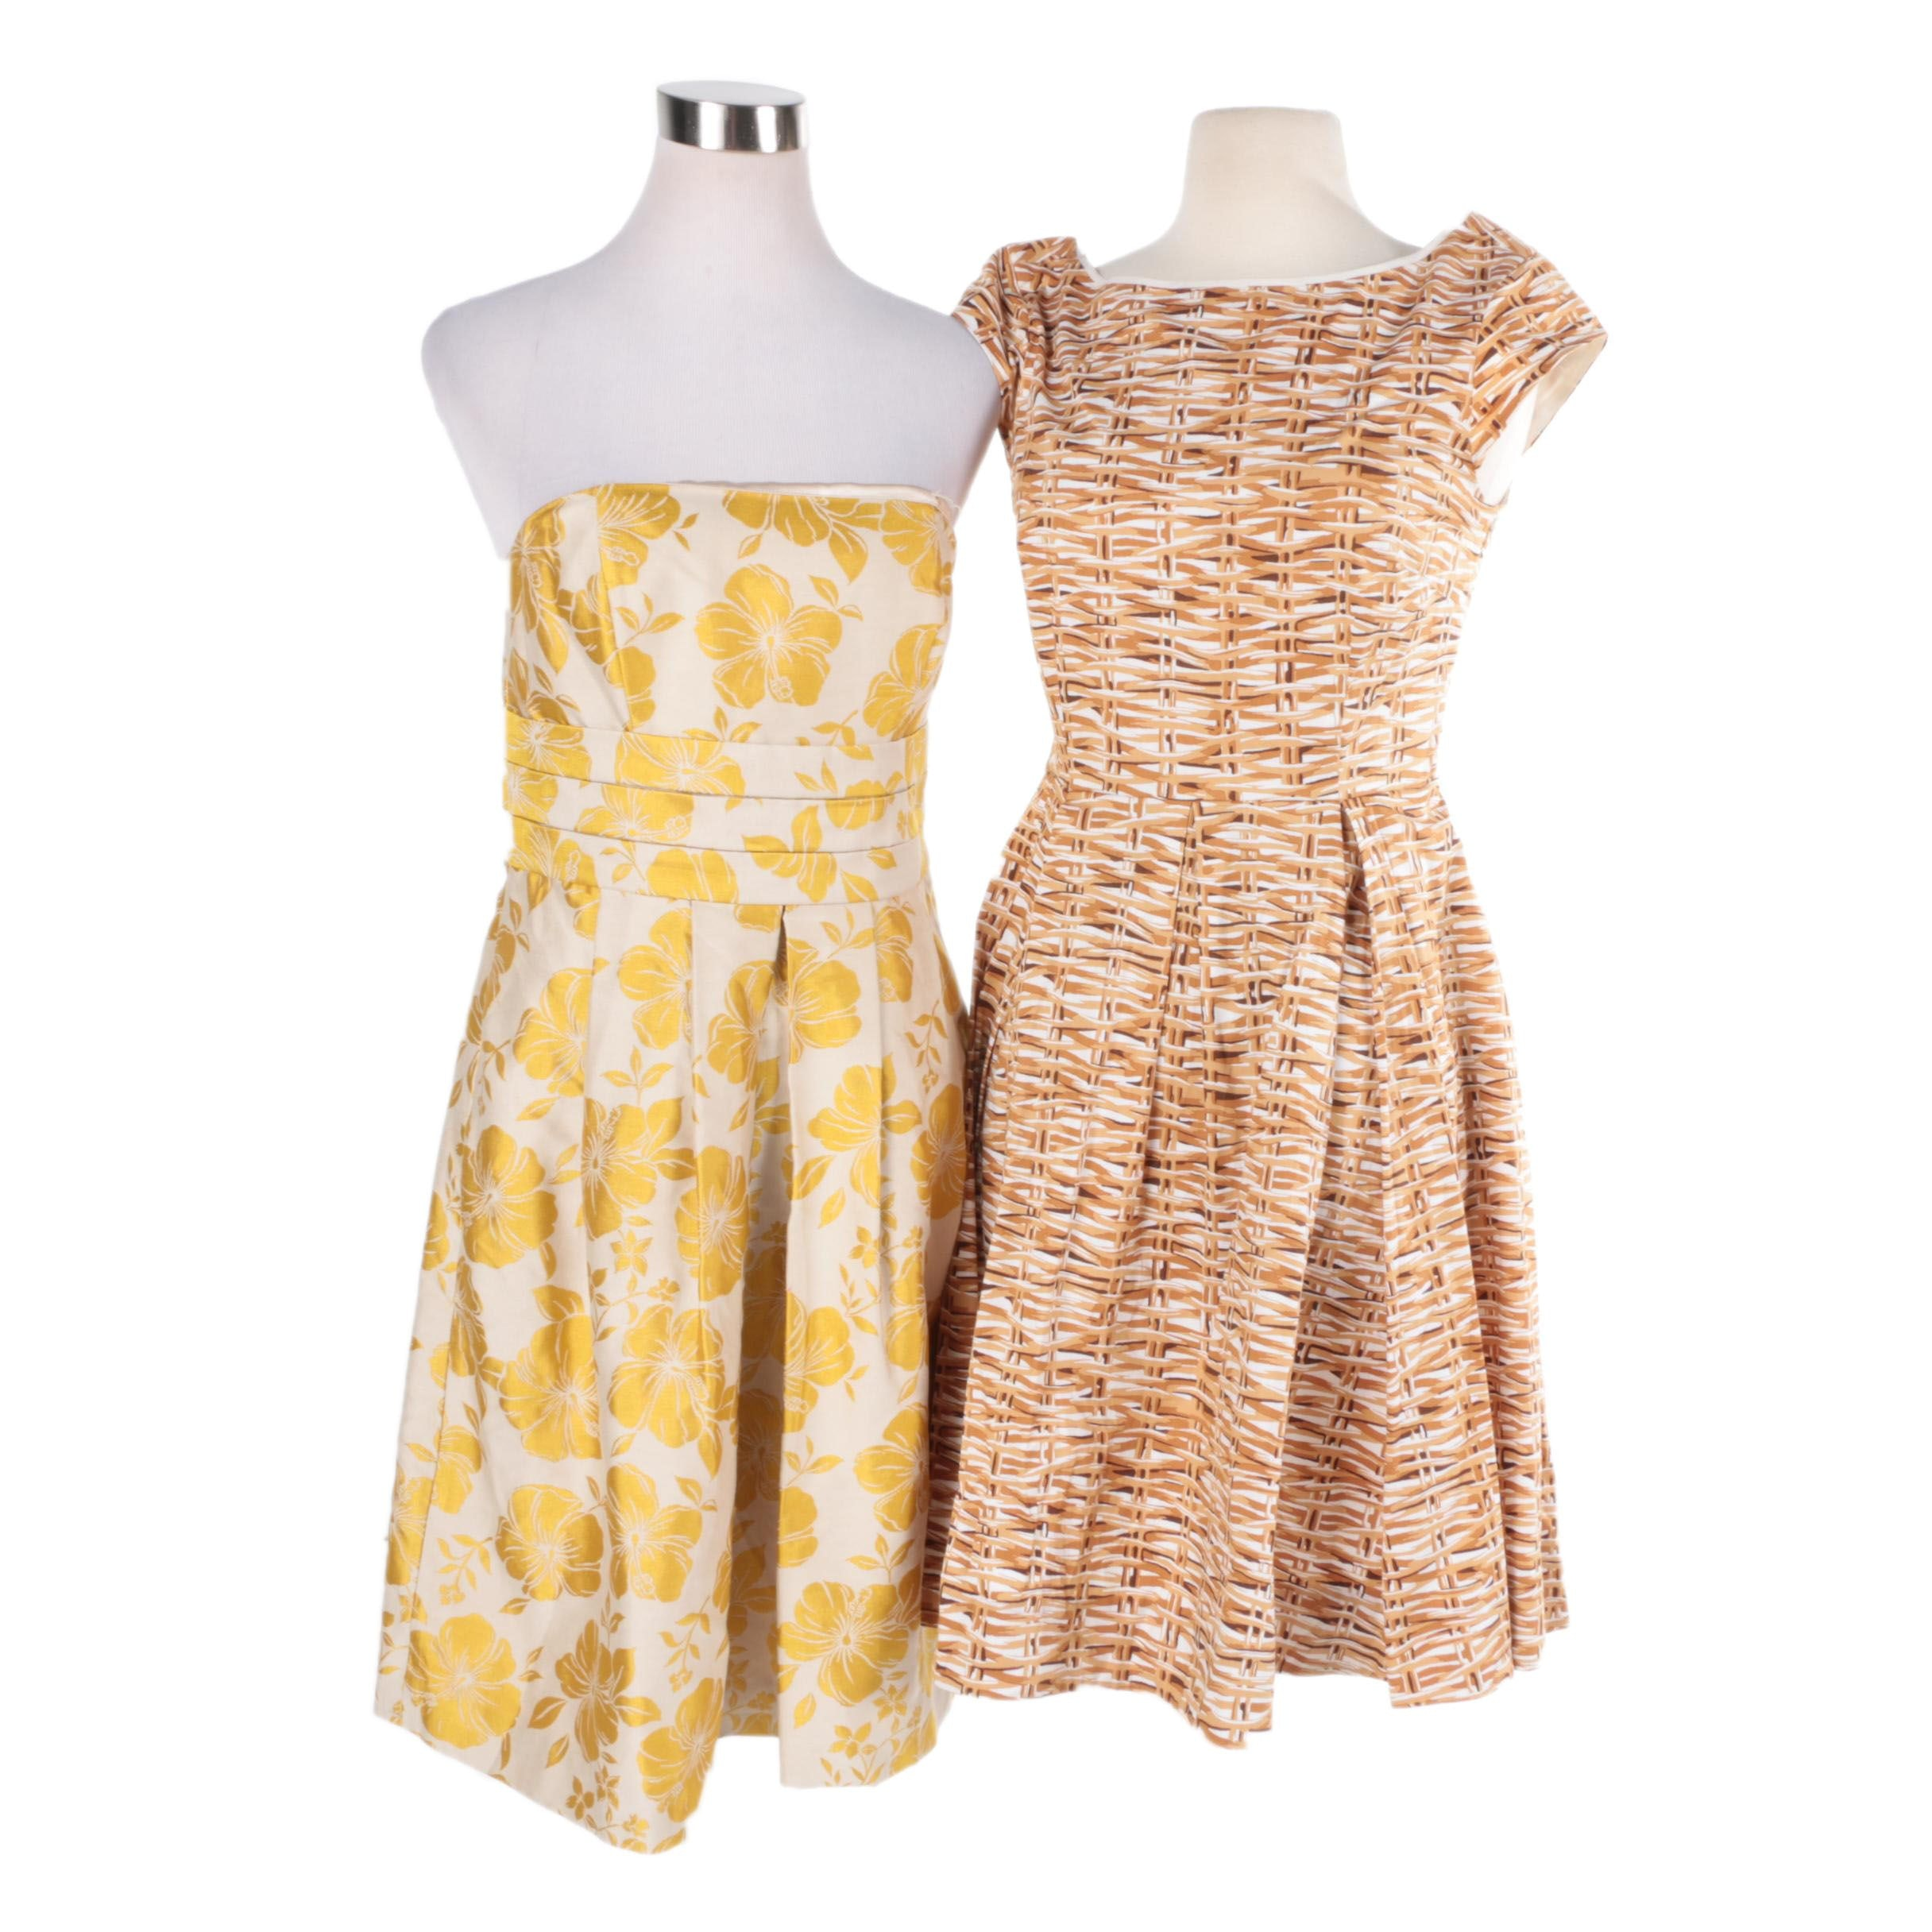 Ann Taylor and Kate Spade Cocktail Dresses